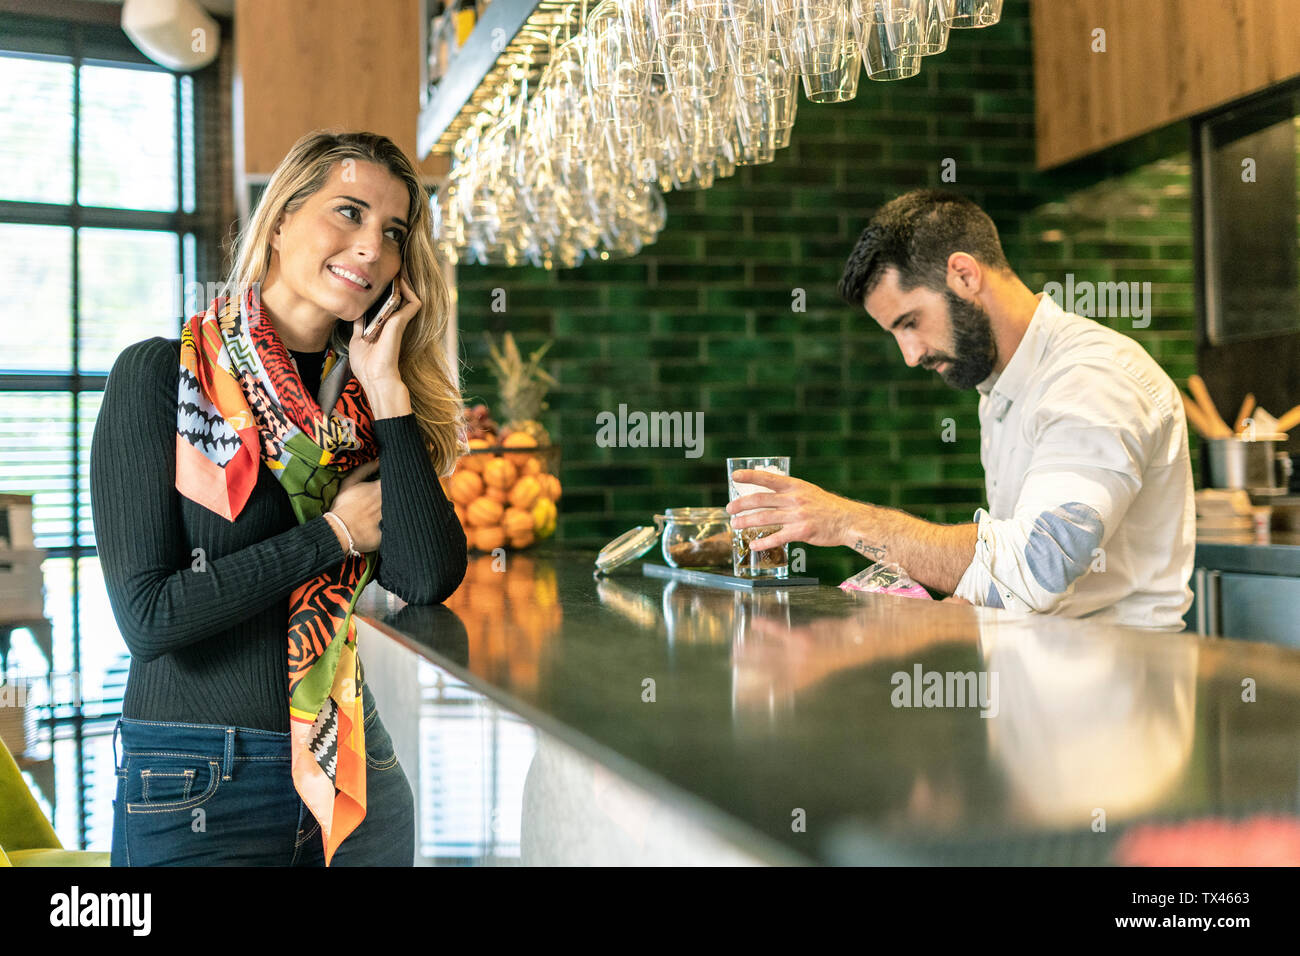 Smiling woman on cell phone at the counter of a bar with barkeeper preparing a cocktail - Stock Image